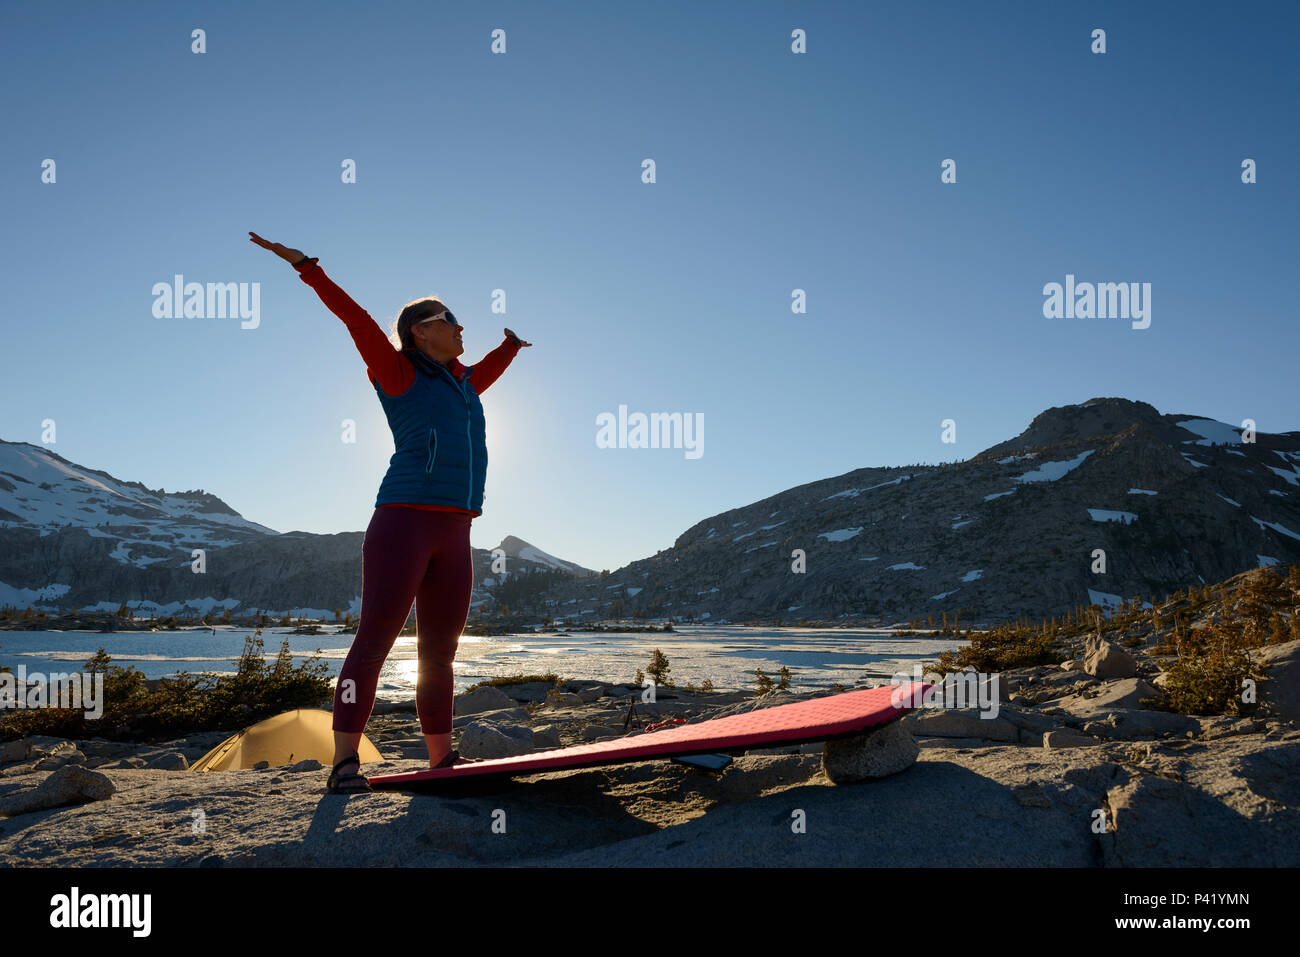 A woman backpacker does yoga at camp in the granite around Lake Aloha in the Desolation wilderness hike in south lake tahoe, California, USA. Stock Photo